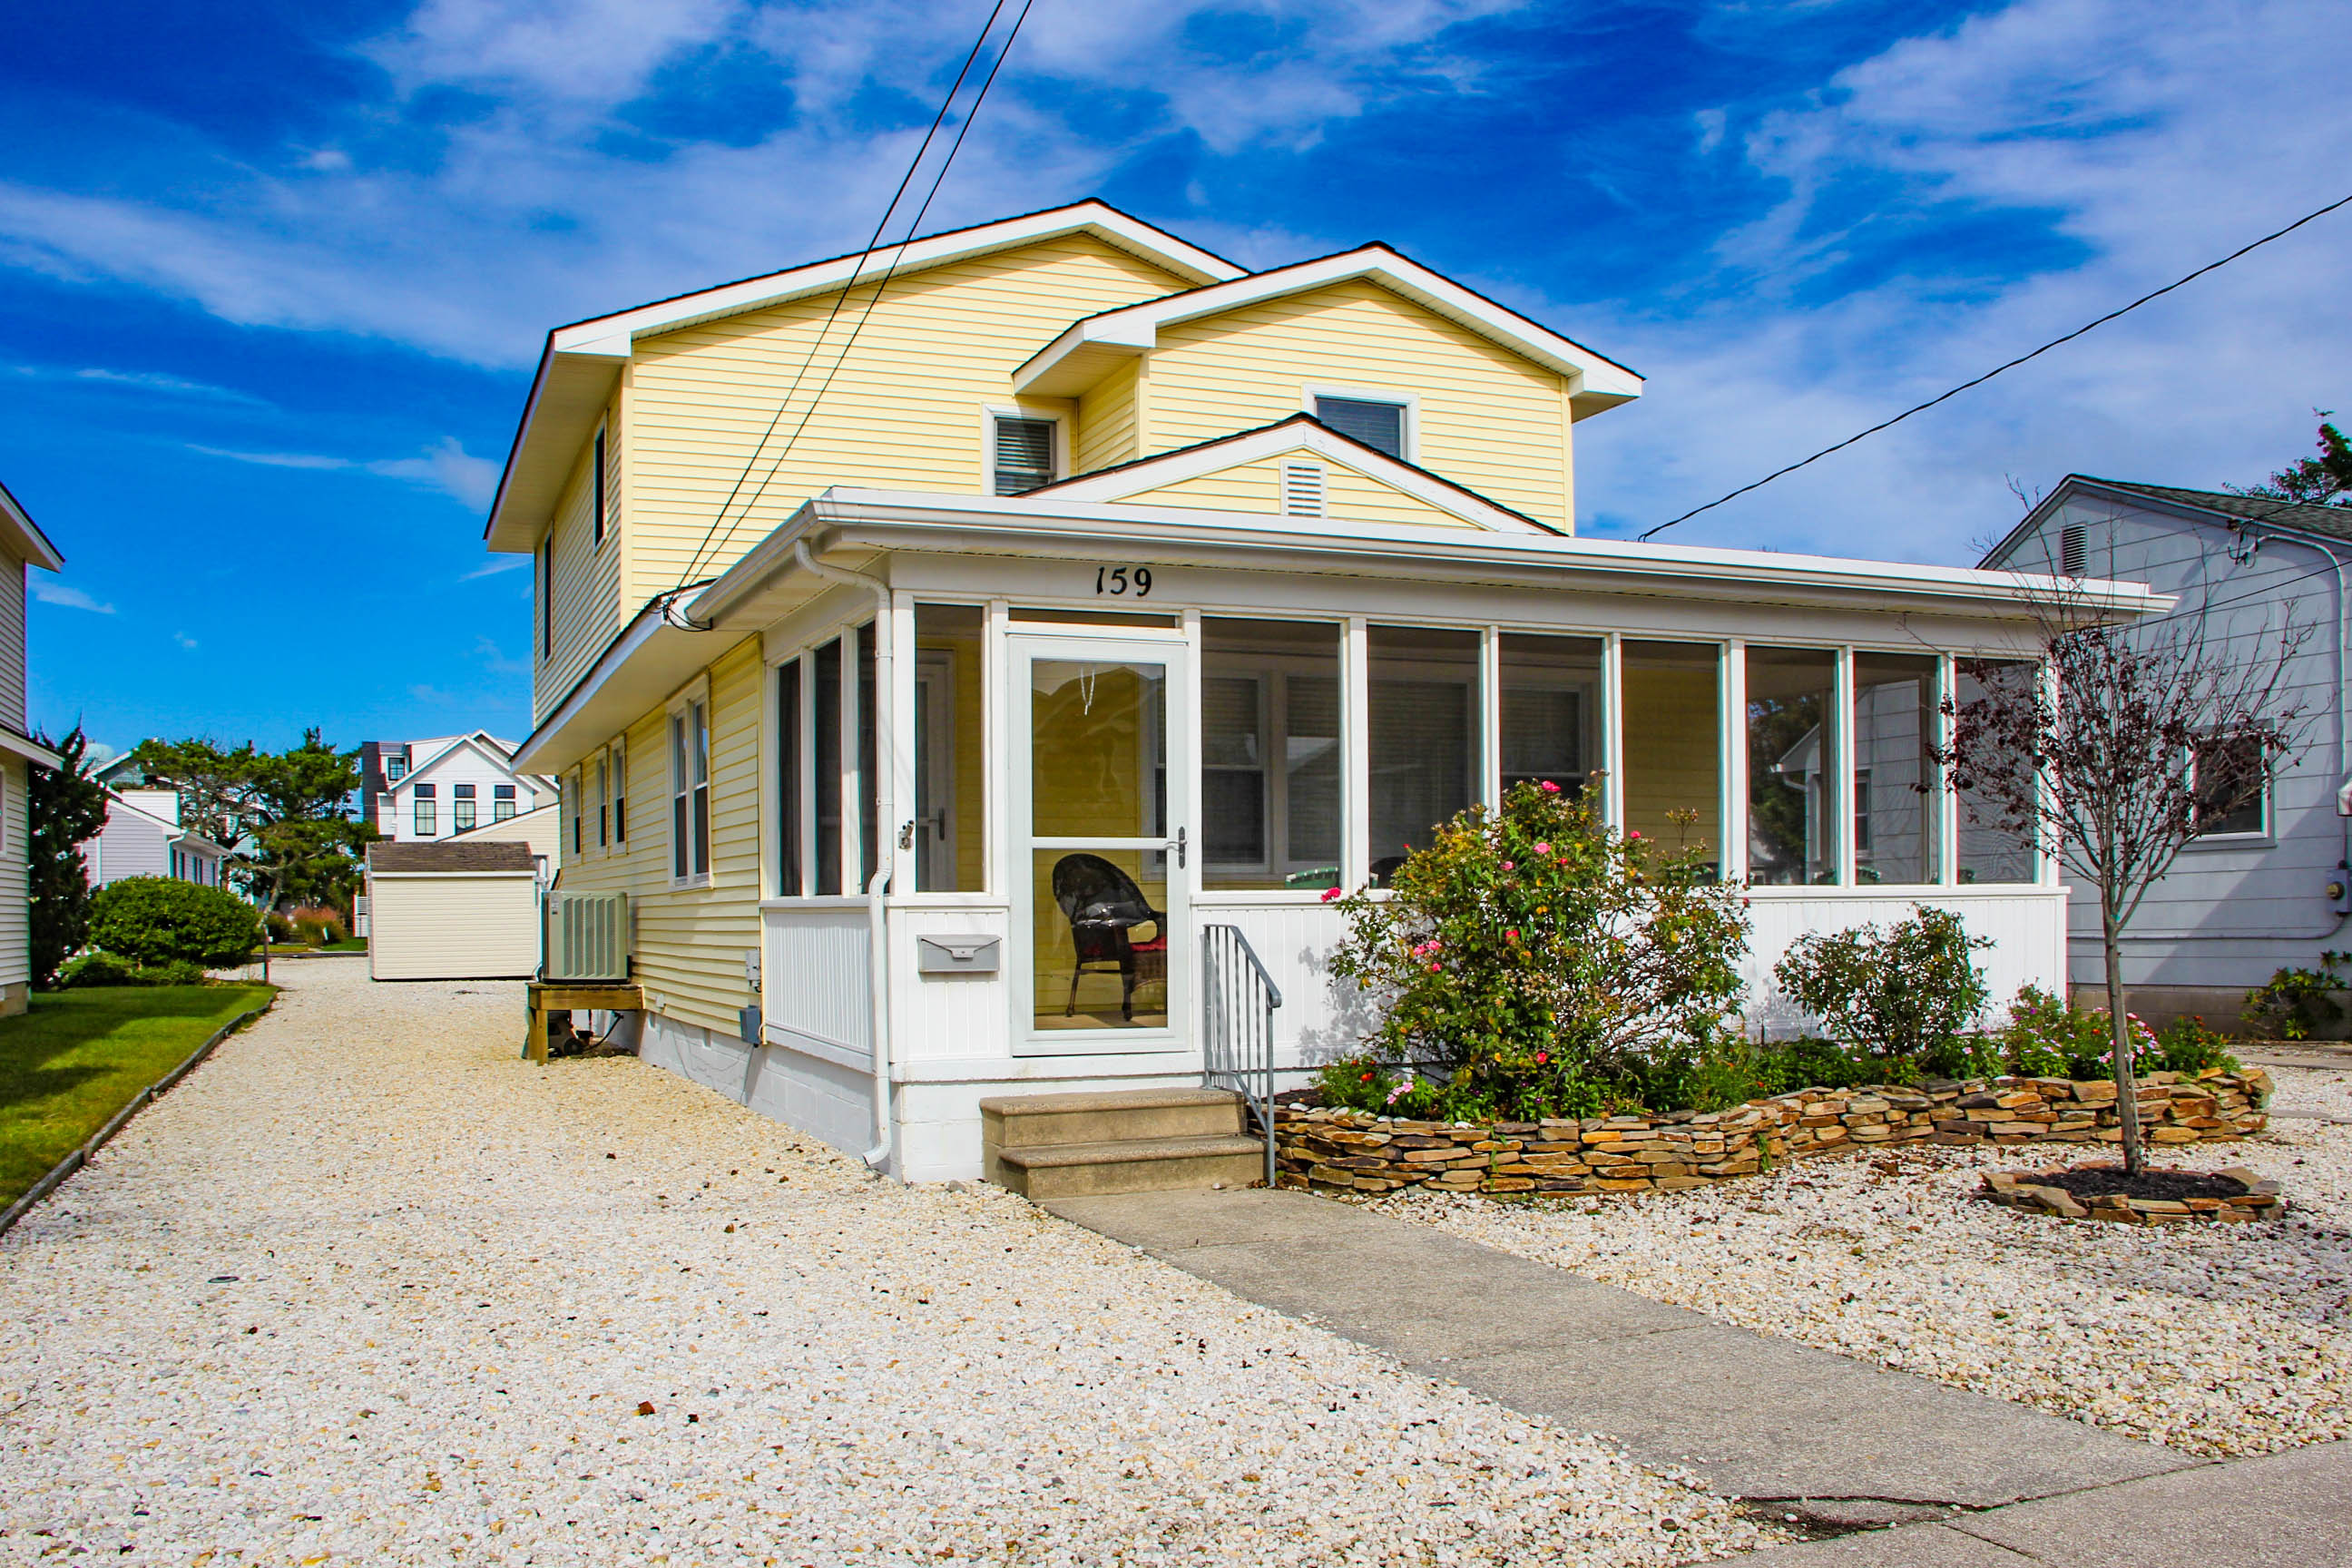 159 19th Street- Avalon, NJ